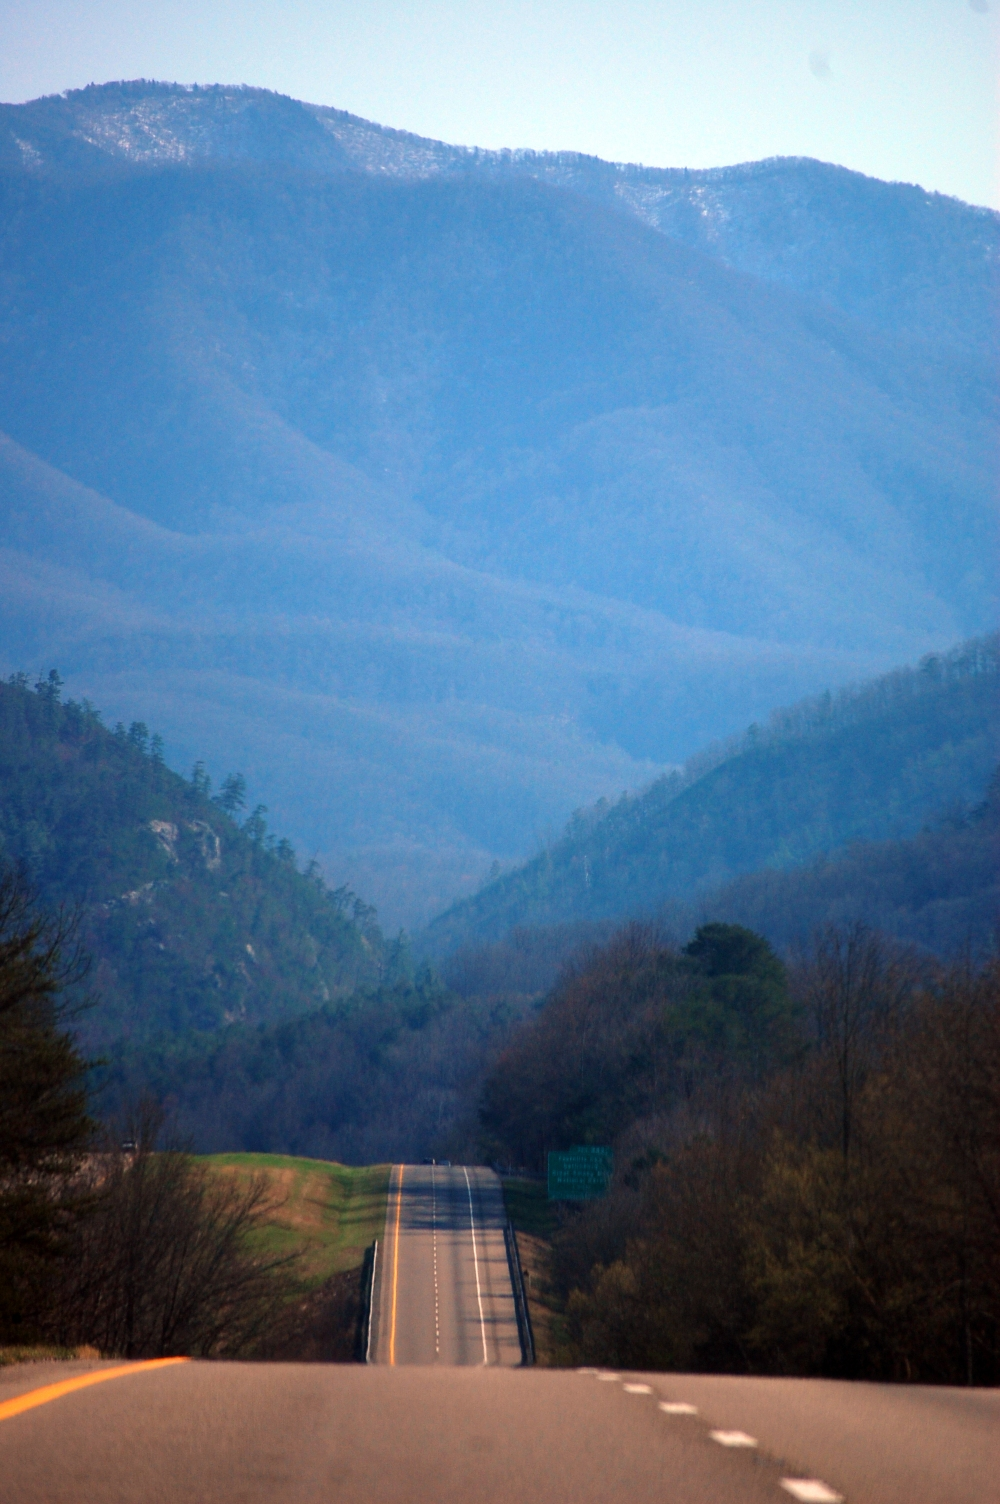 Mountain Road from North Carolina to Tennessee